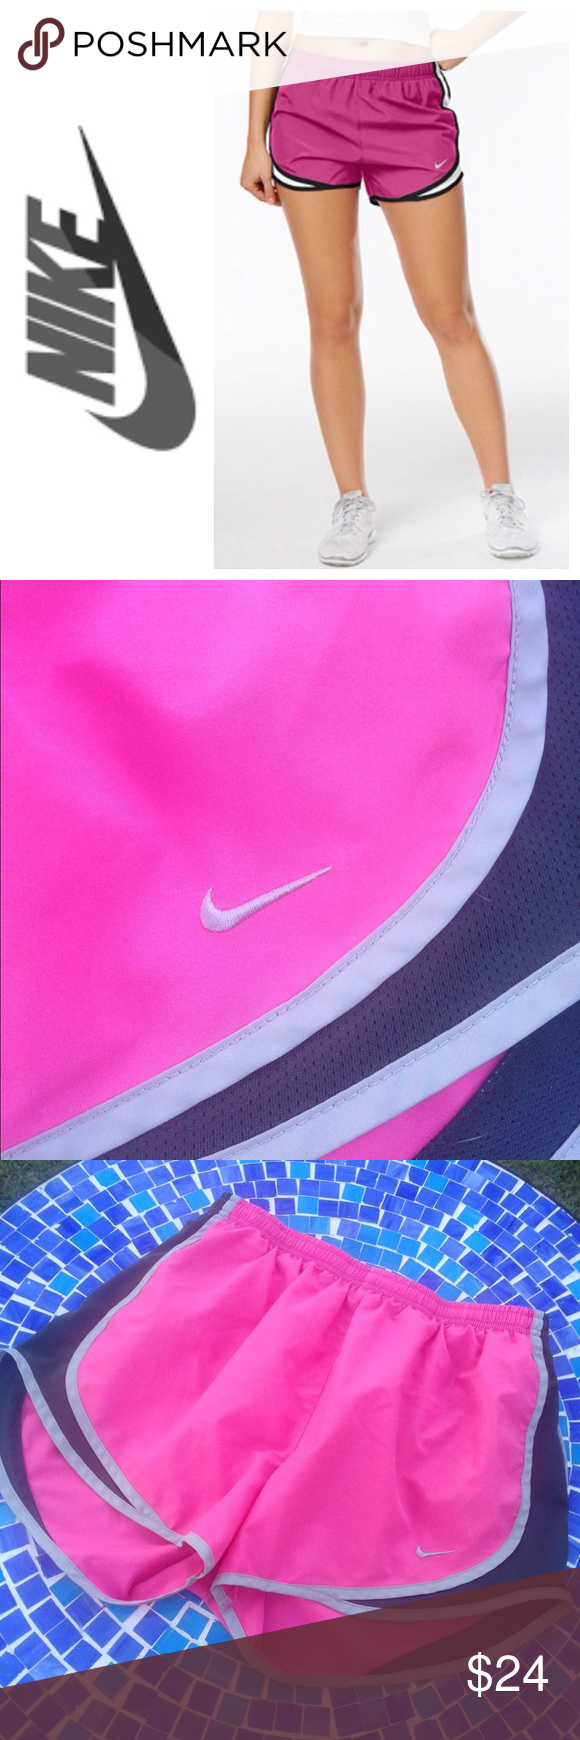 Nike Tempo running shorts in pink These incredible shorts by Nike were crafted for style & function!  Made from incredibly comfy material with mesh-insets to keep you dry & cool, as well!  Perfect for every activity & exercise!  Retail at $35 & available in pink/charcoal/grey.  Size Medium.  No trades please. Nike Shorts